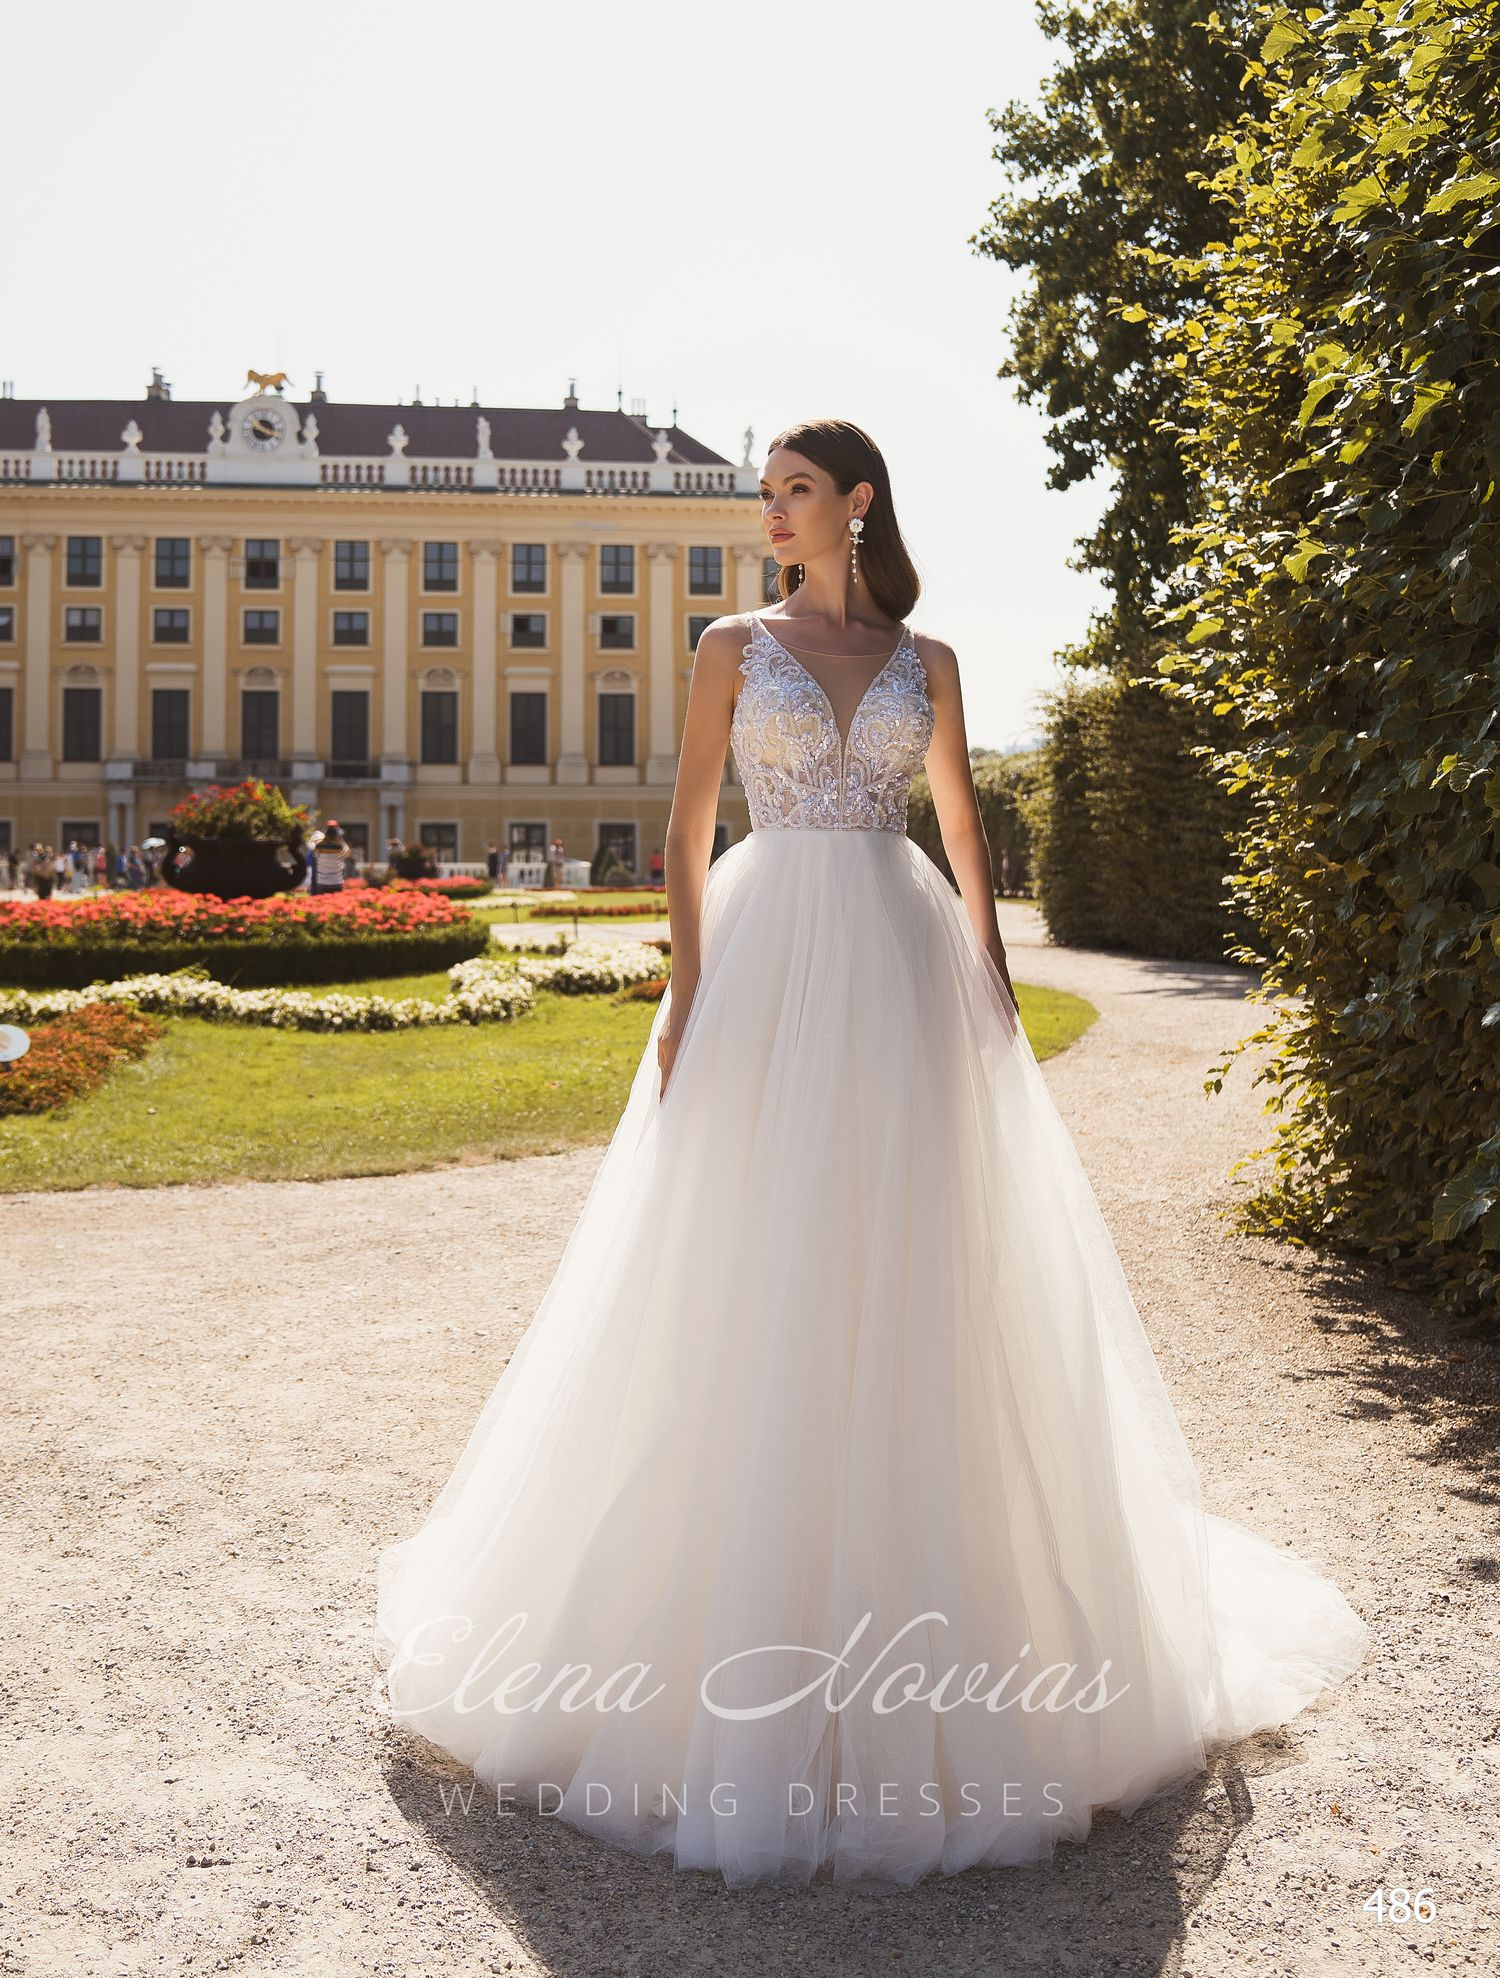 Wedding dresses 486